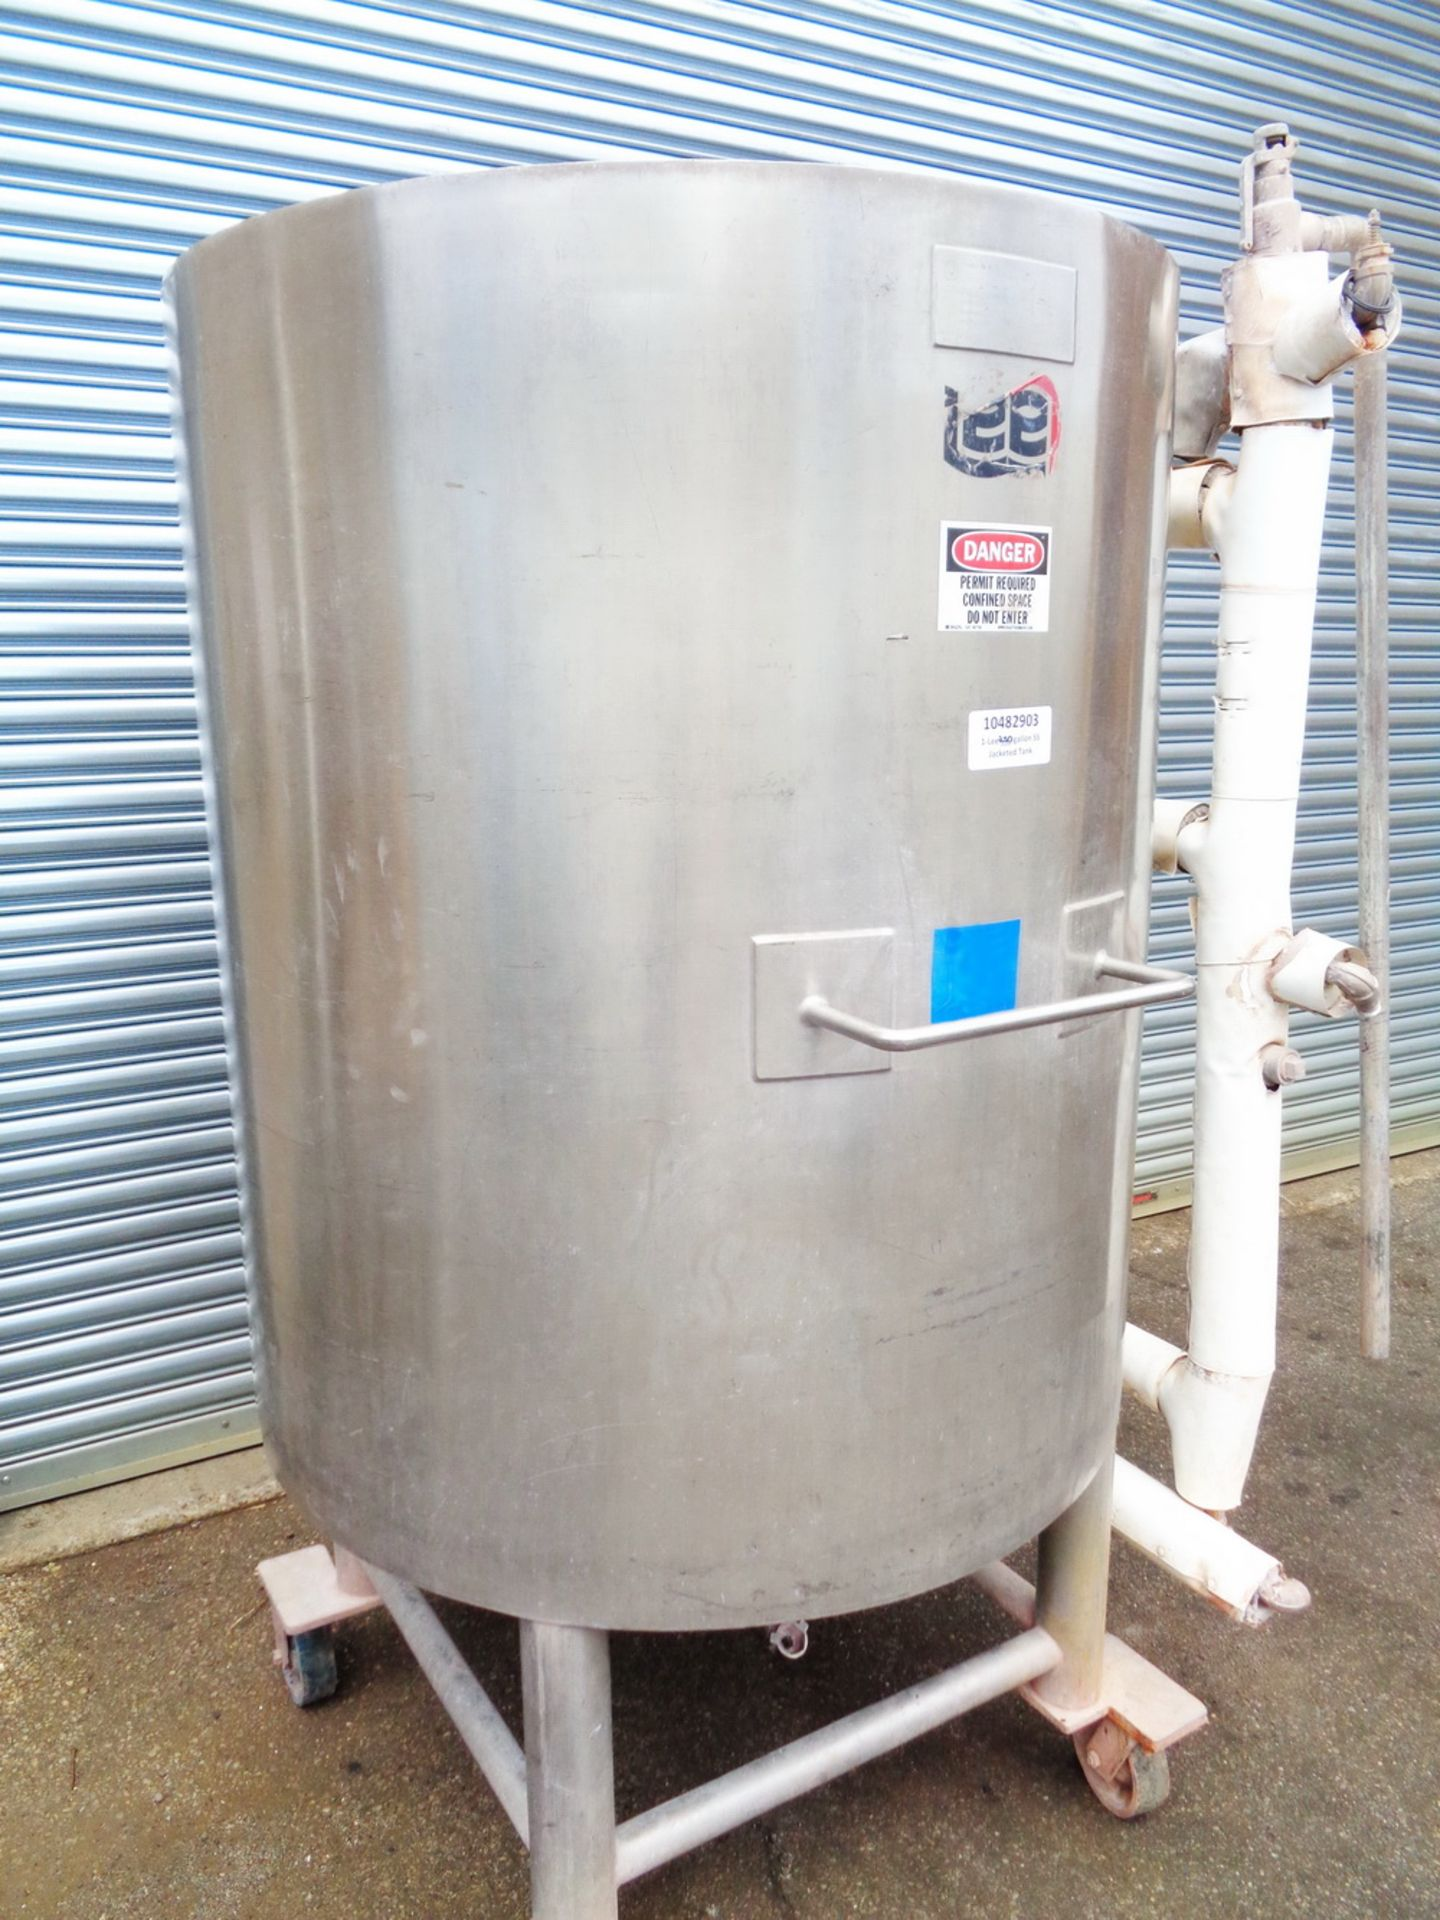 Lee 250 gallon Stainless Steel Jacketed Tank/Kettle, Model 250U - Image 4 of 9